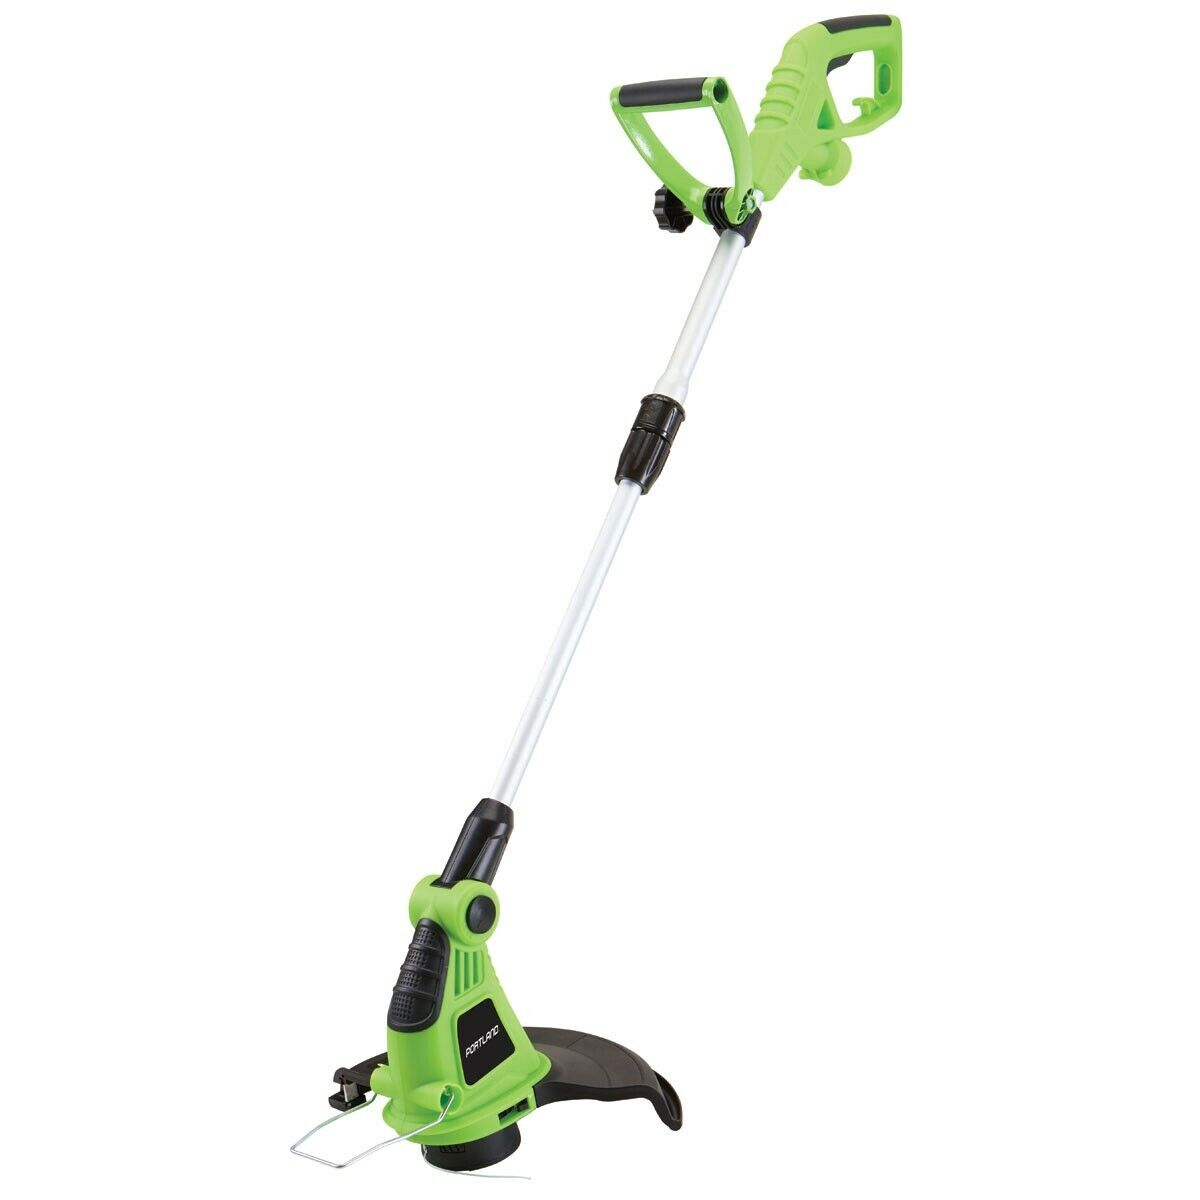 13 in. Corded Electric String Trimmer & Edger Lawn Weed Wack